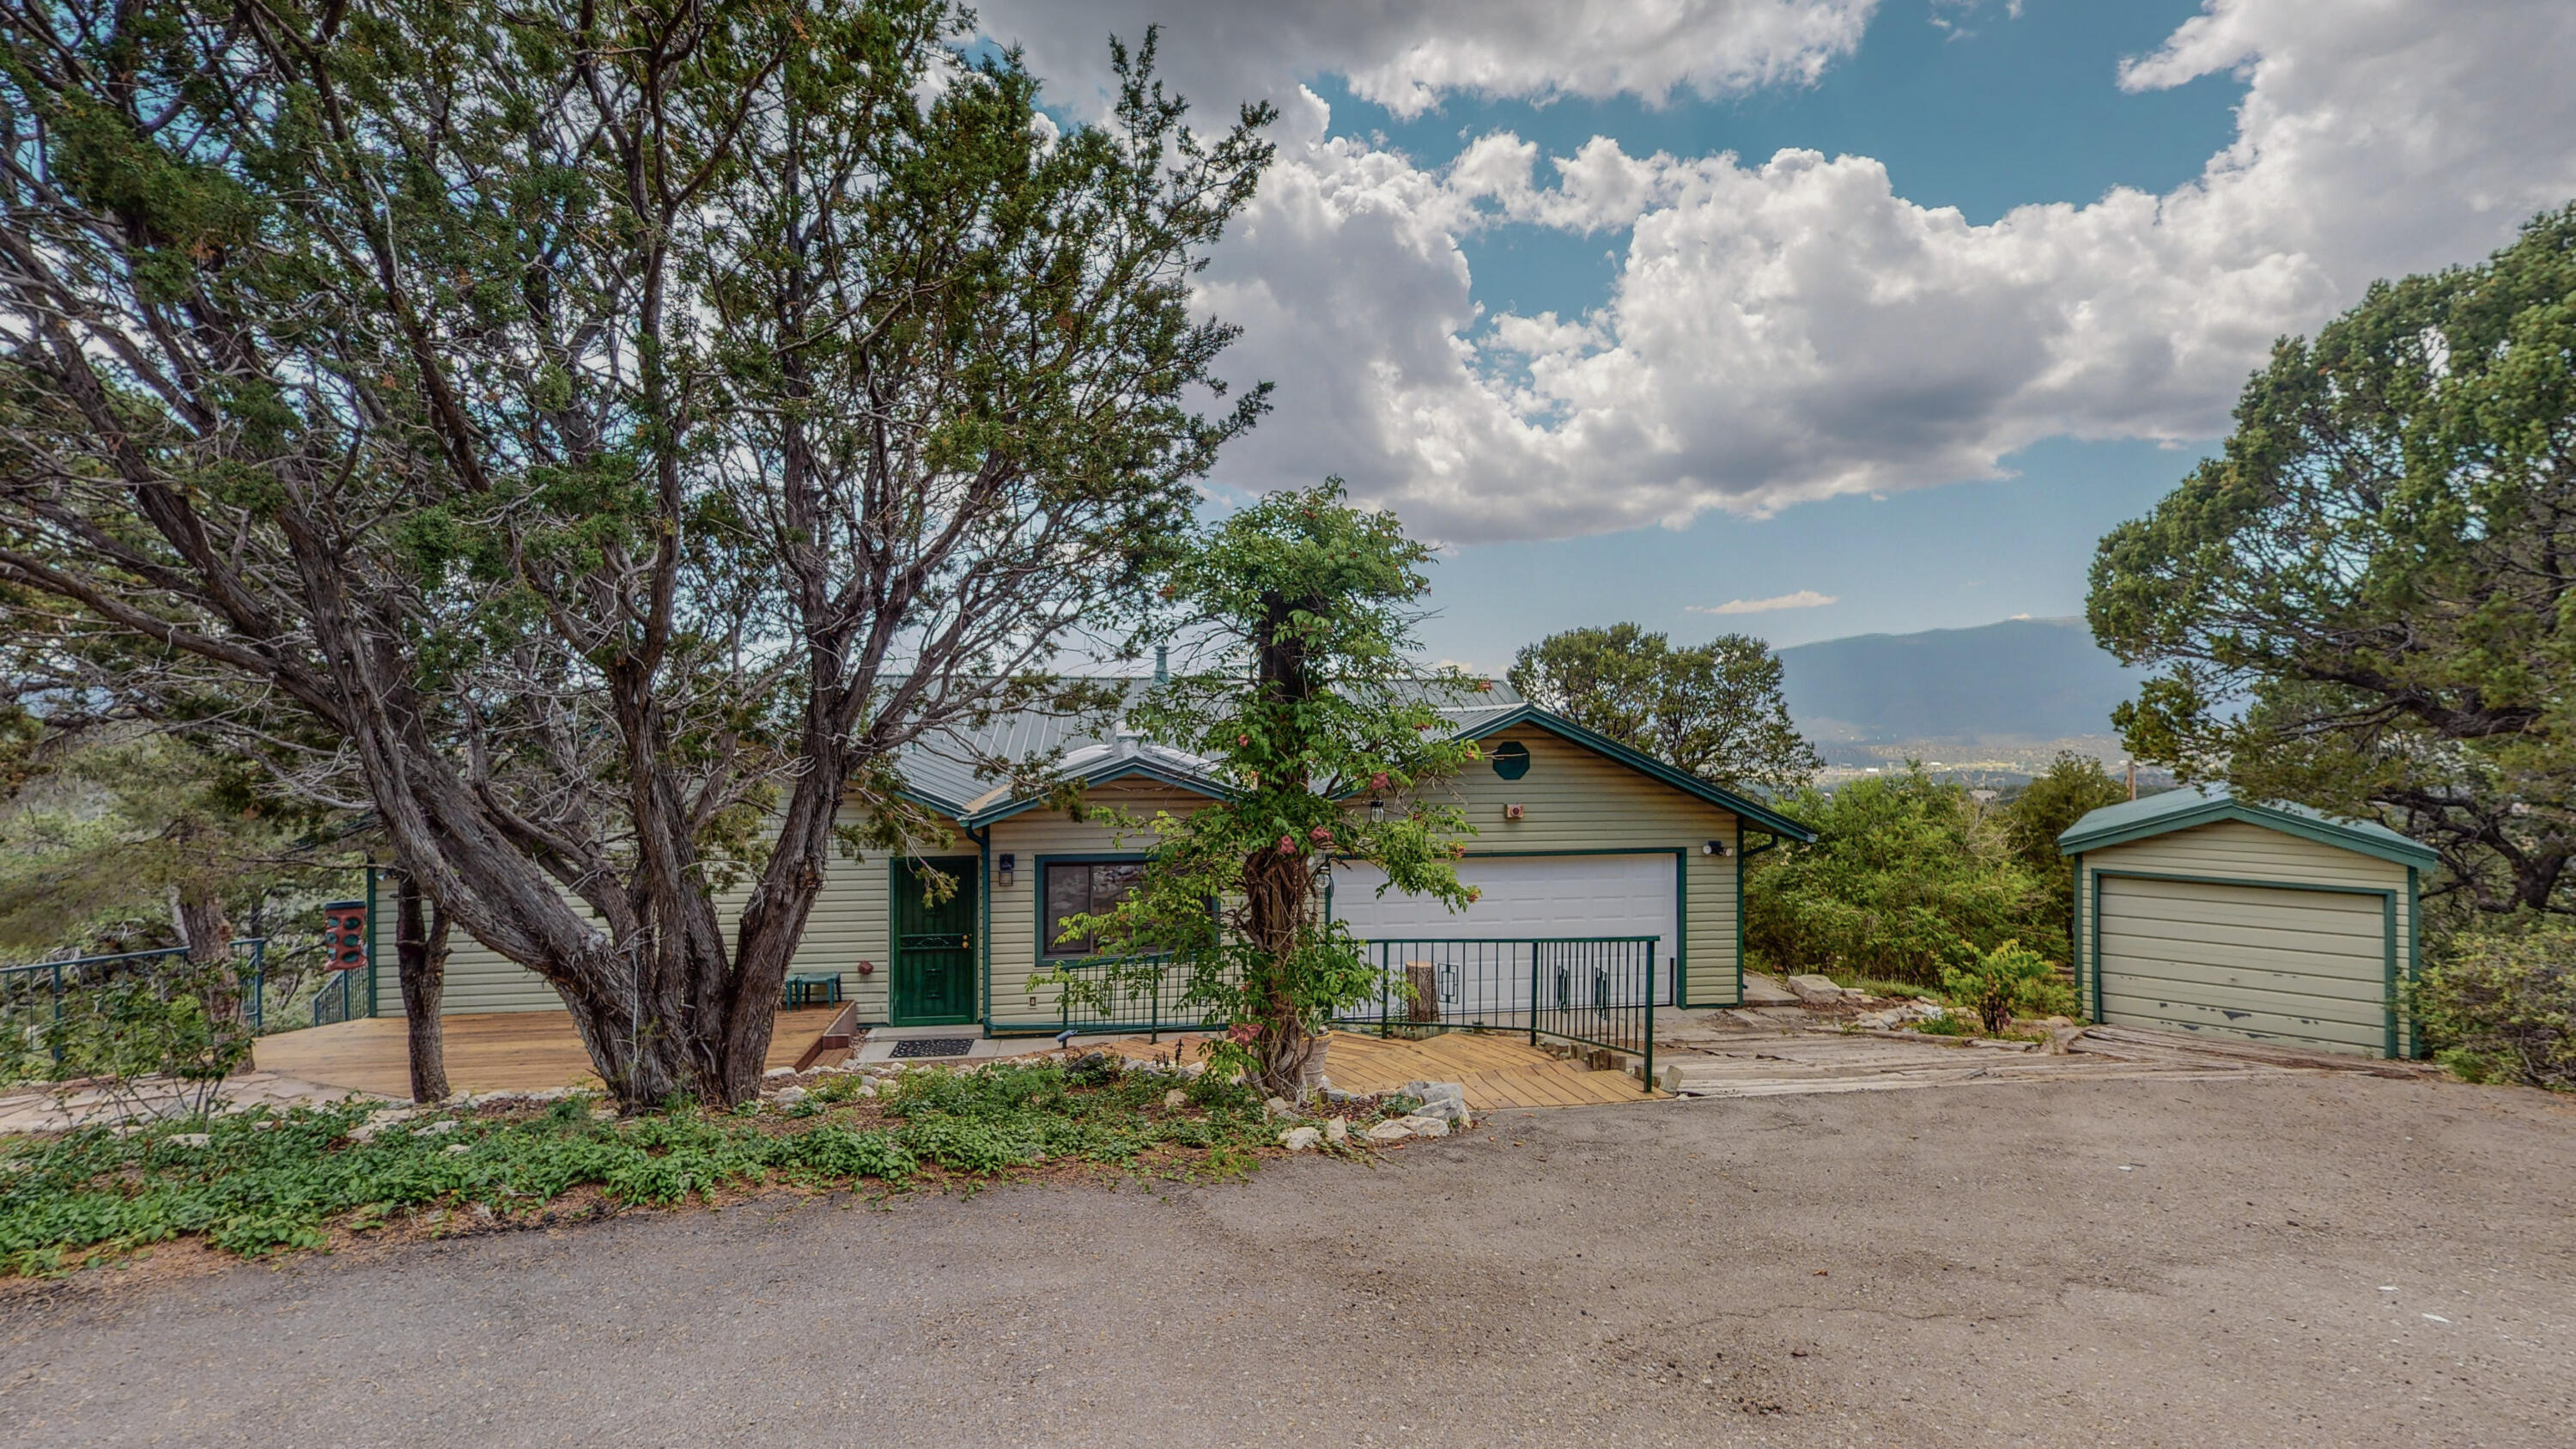 Property is an estate sale.  Work on the inside is being finished up. Metal roof put on in 2019, new well pump 2020, there will be new flooring in entire home, all window glass has been replaced, all interior has been repainted and decks refurnished.  Home has a spectacular view of the west valley and sunset.  It is a 3 bedroom, 3 bath with a separate office and dining area.  Granite counter tops in the kitchen.  Home is spacious with an easy flow floorplan that has a back deck the length of the home for great entertainment or just relaxing while enjoying the view.  Don't miss out on this one.  Schedule your showing today.Professional photos will be done once all the work is completed.